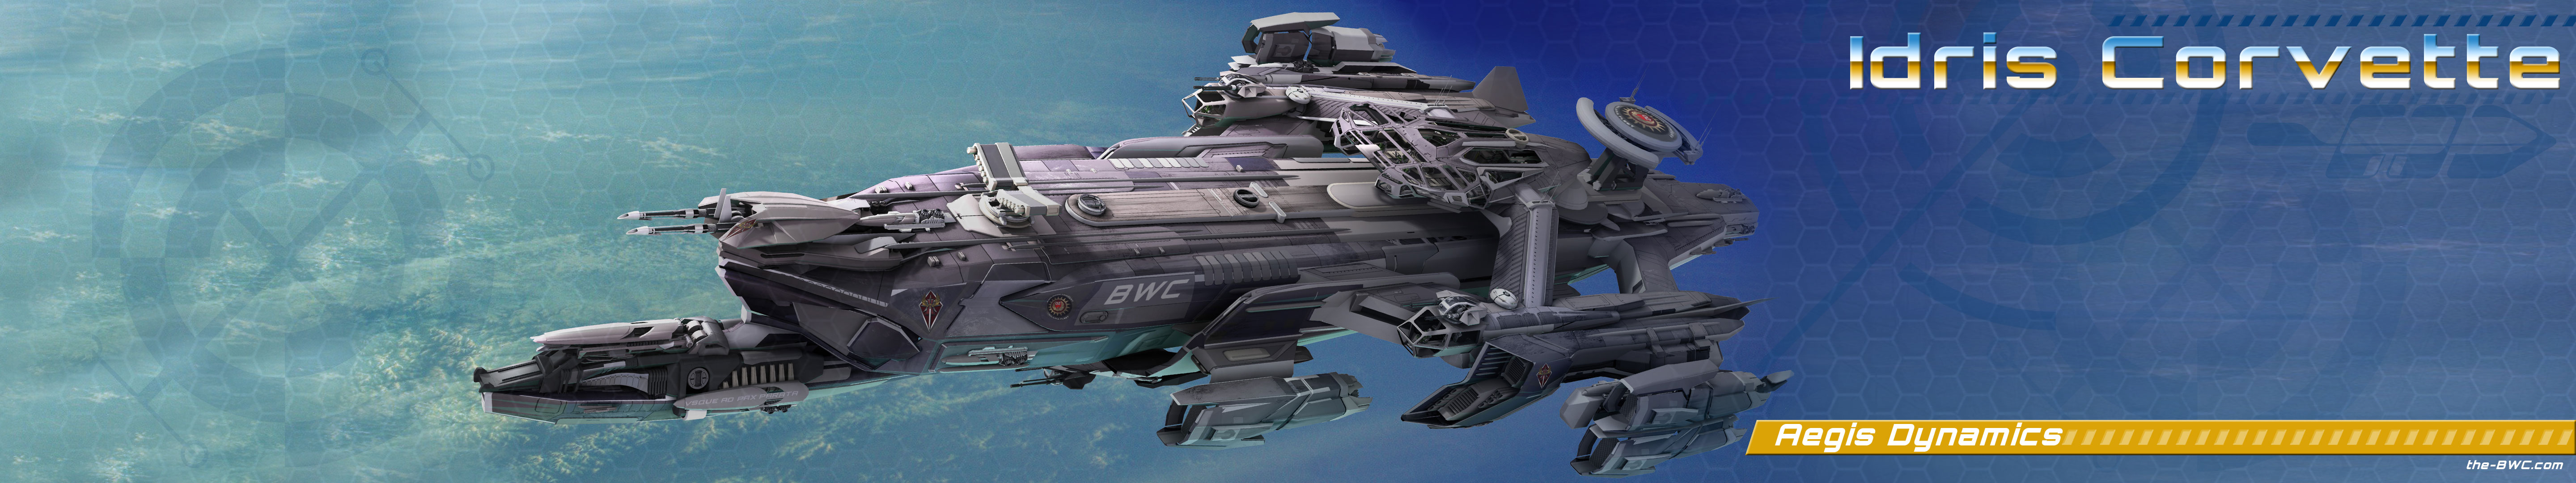 Star Citizen wallpapers for your computer   Page 2   RSI Community 5760x1080